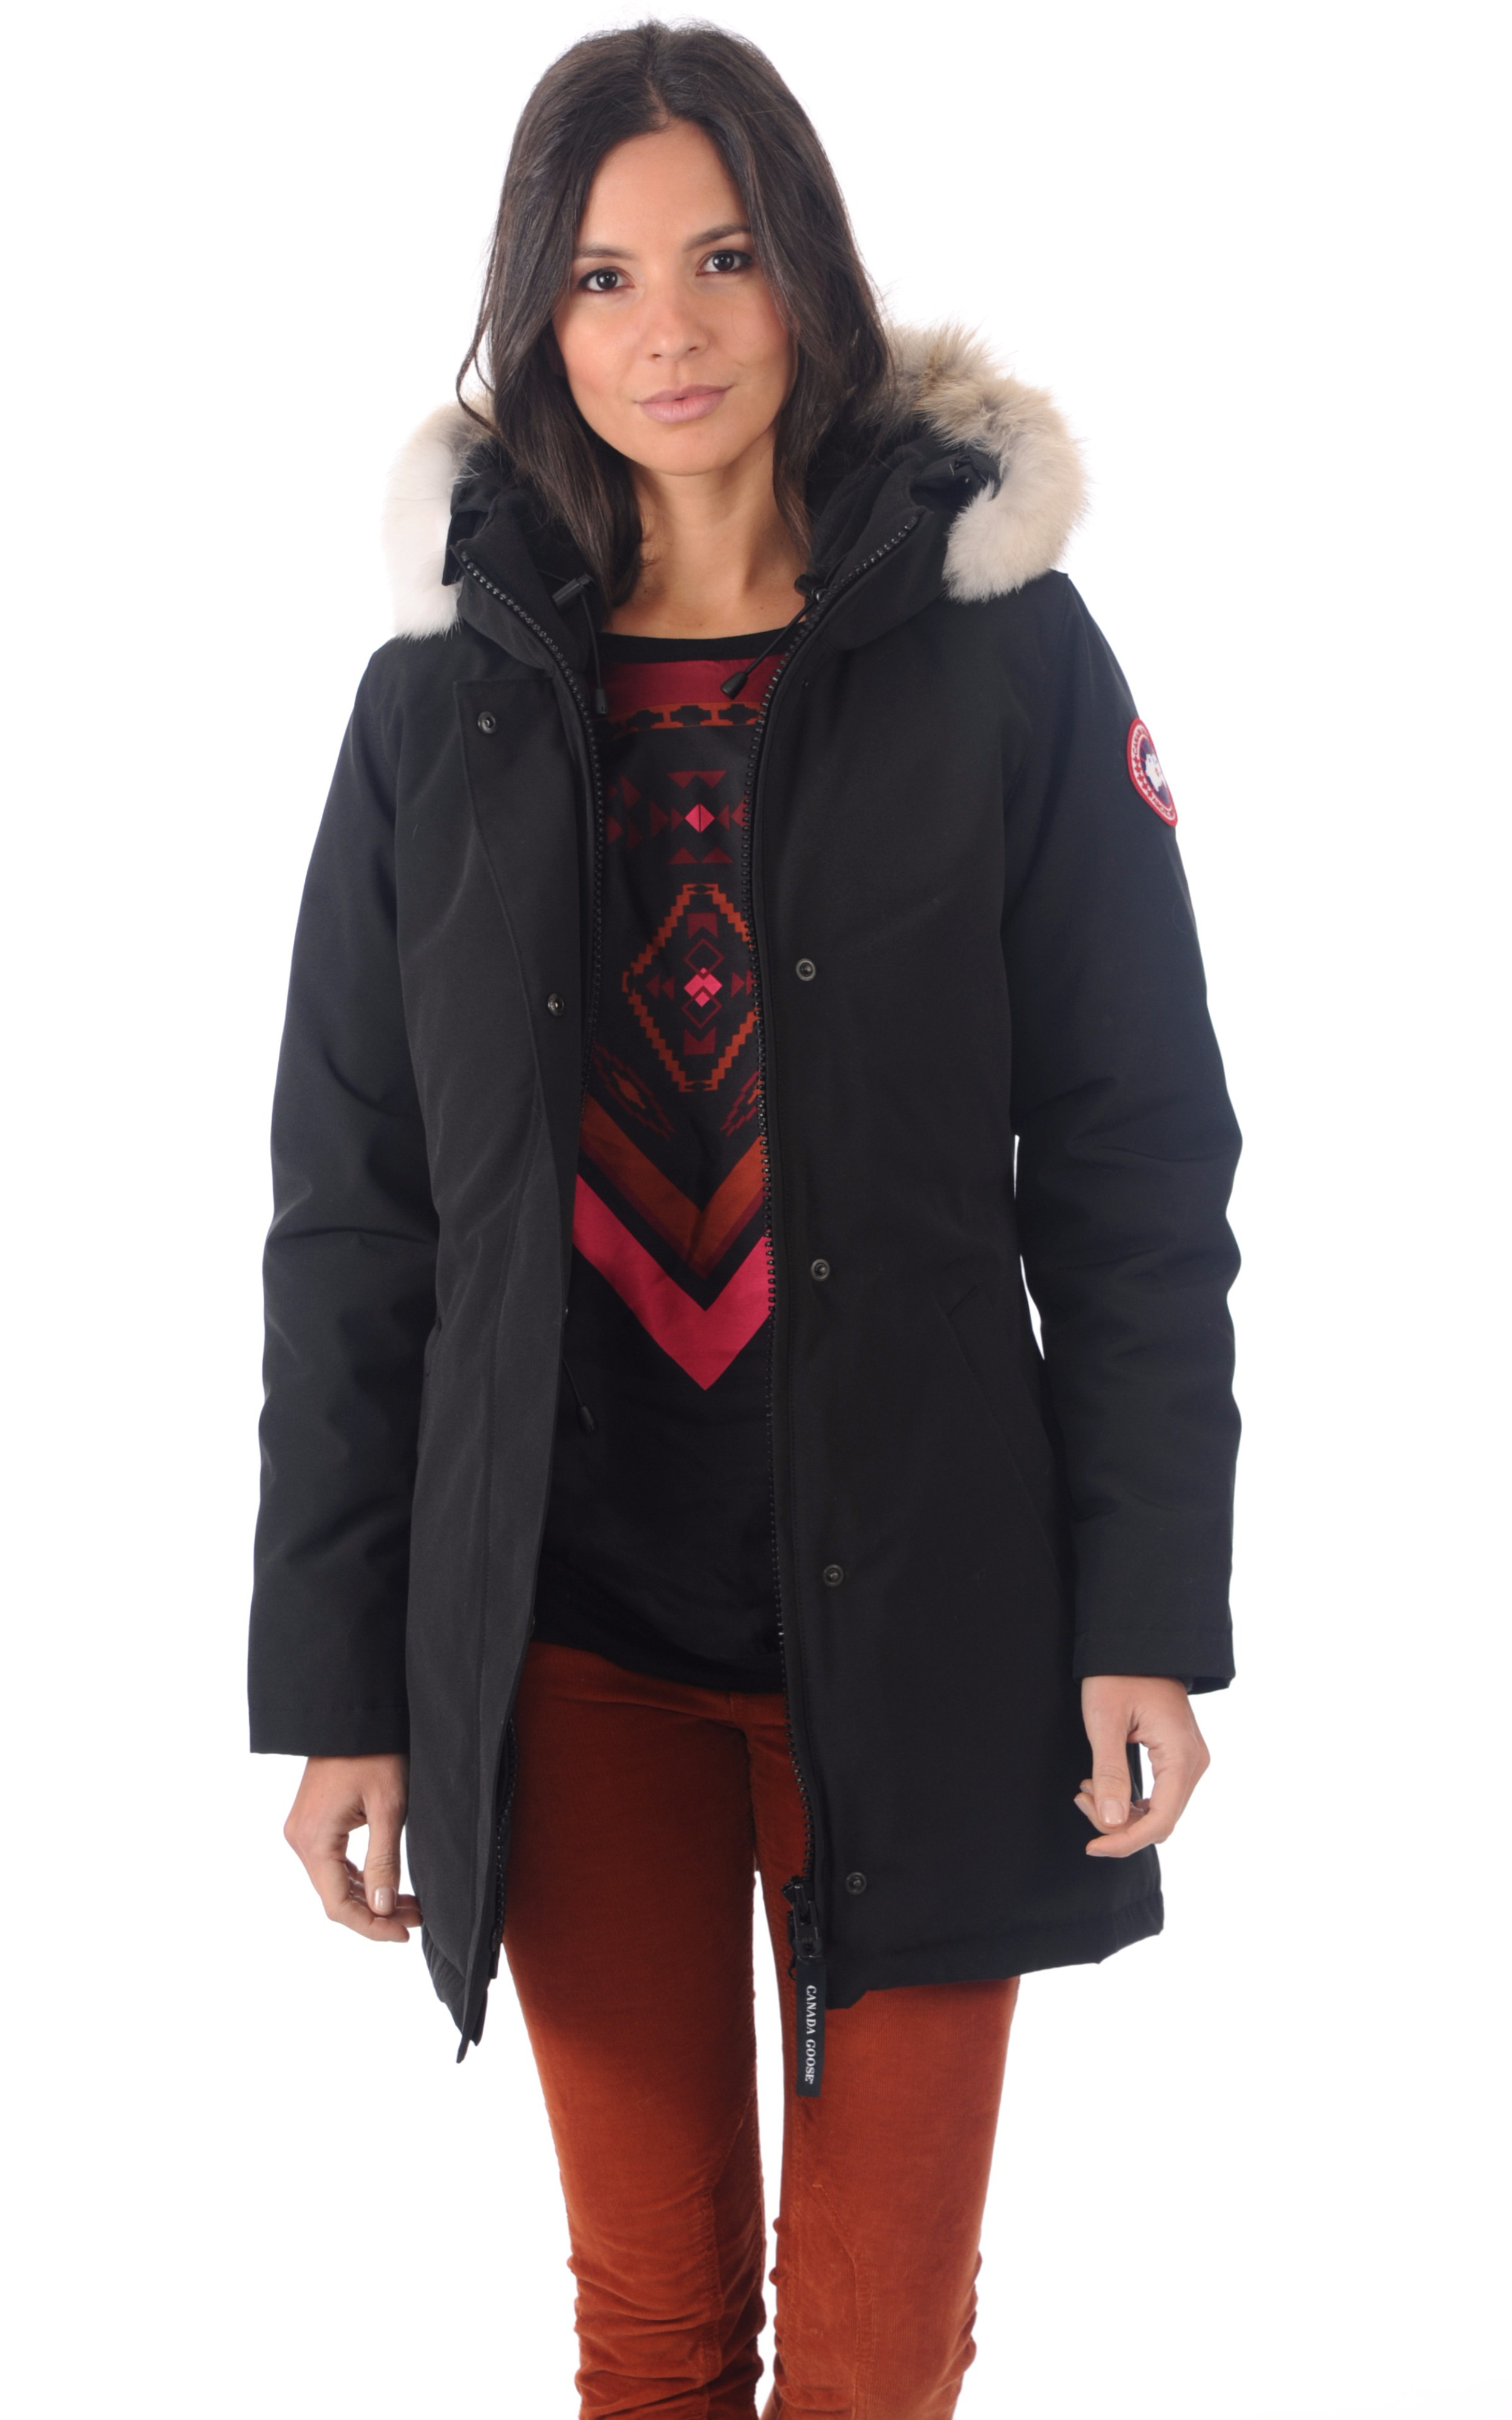 canada goose paiement 4 fois canada goose trillium parka. Black Bedroom Furniture Sets. Home Design Ideas